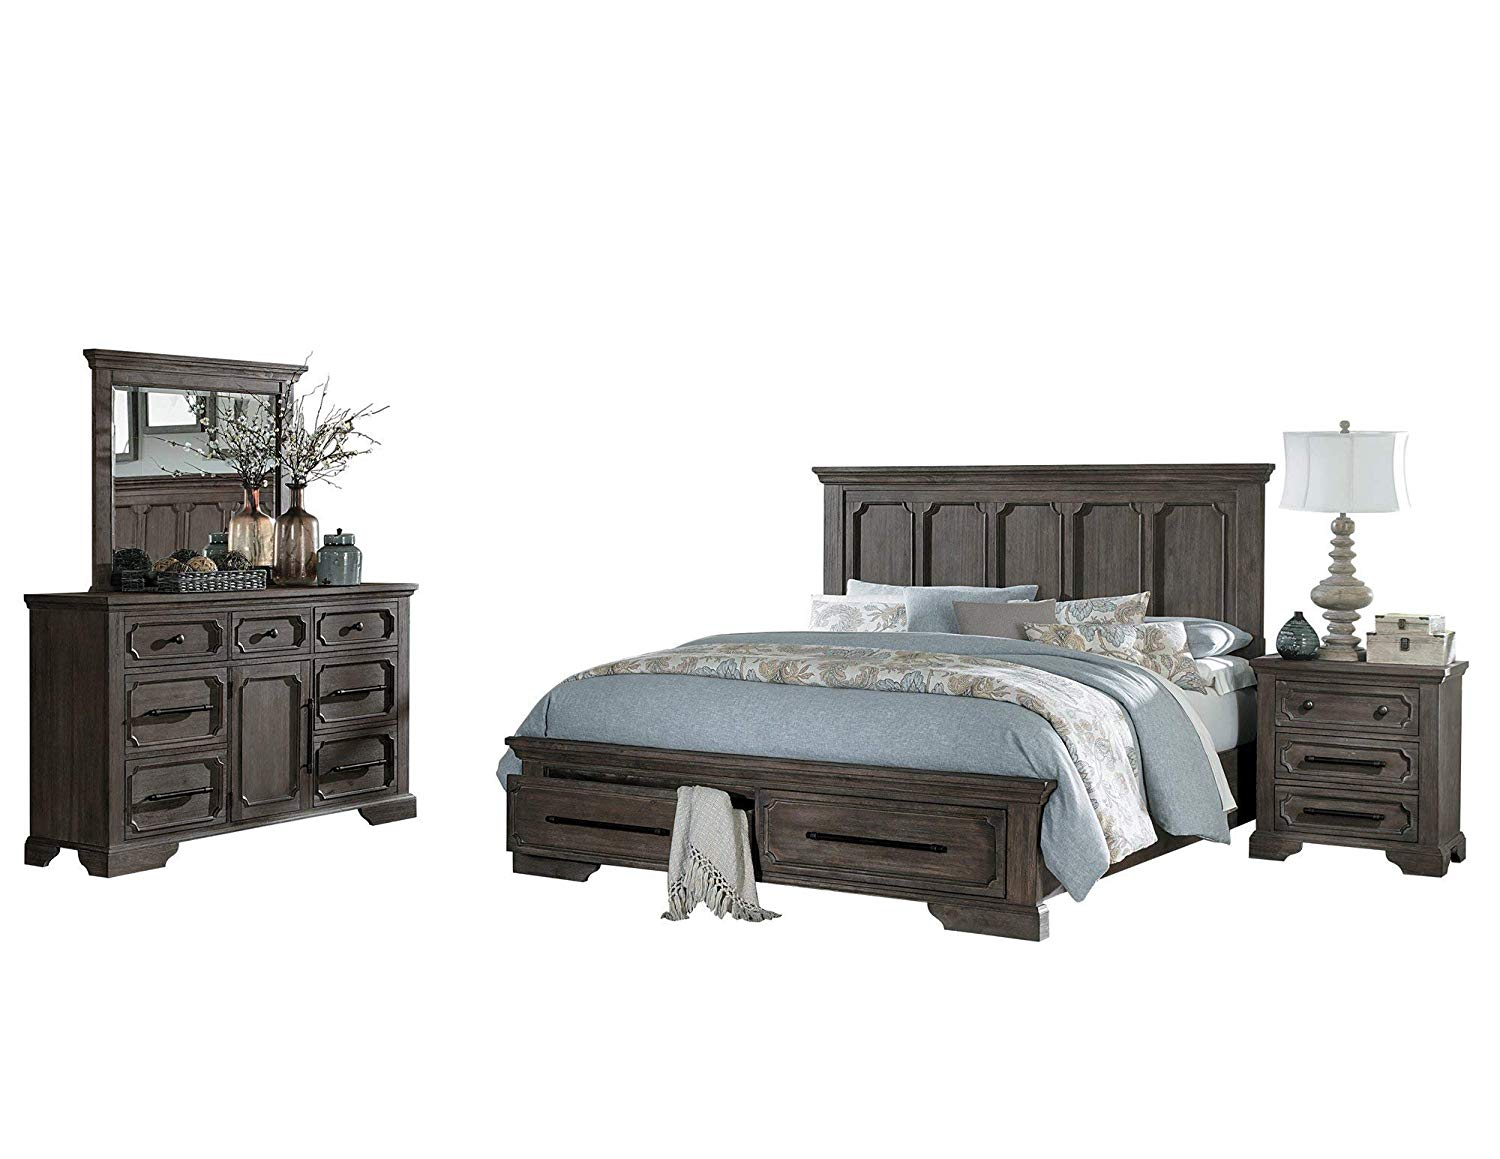 Thiara French Farmhouse 4PC Bedroom Set Cal King Storage Bed, Dresser, Mirror, 1 Nightstand in Acacia Wood Finish